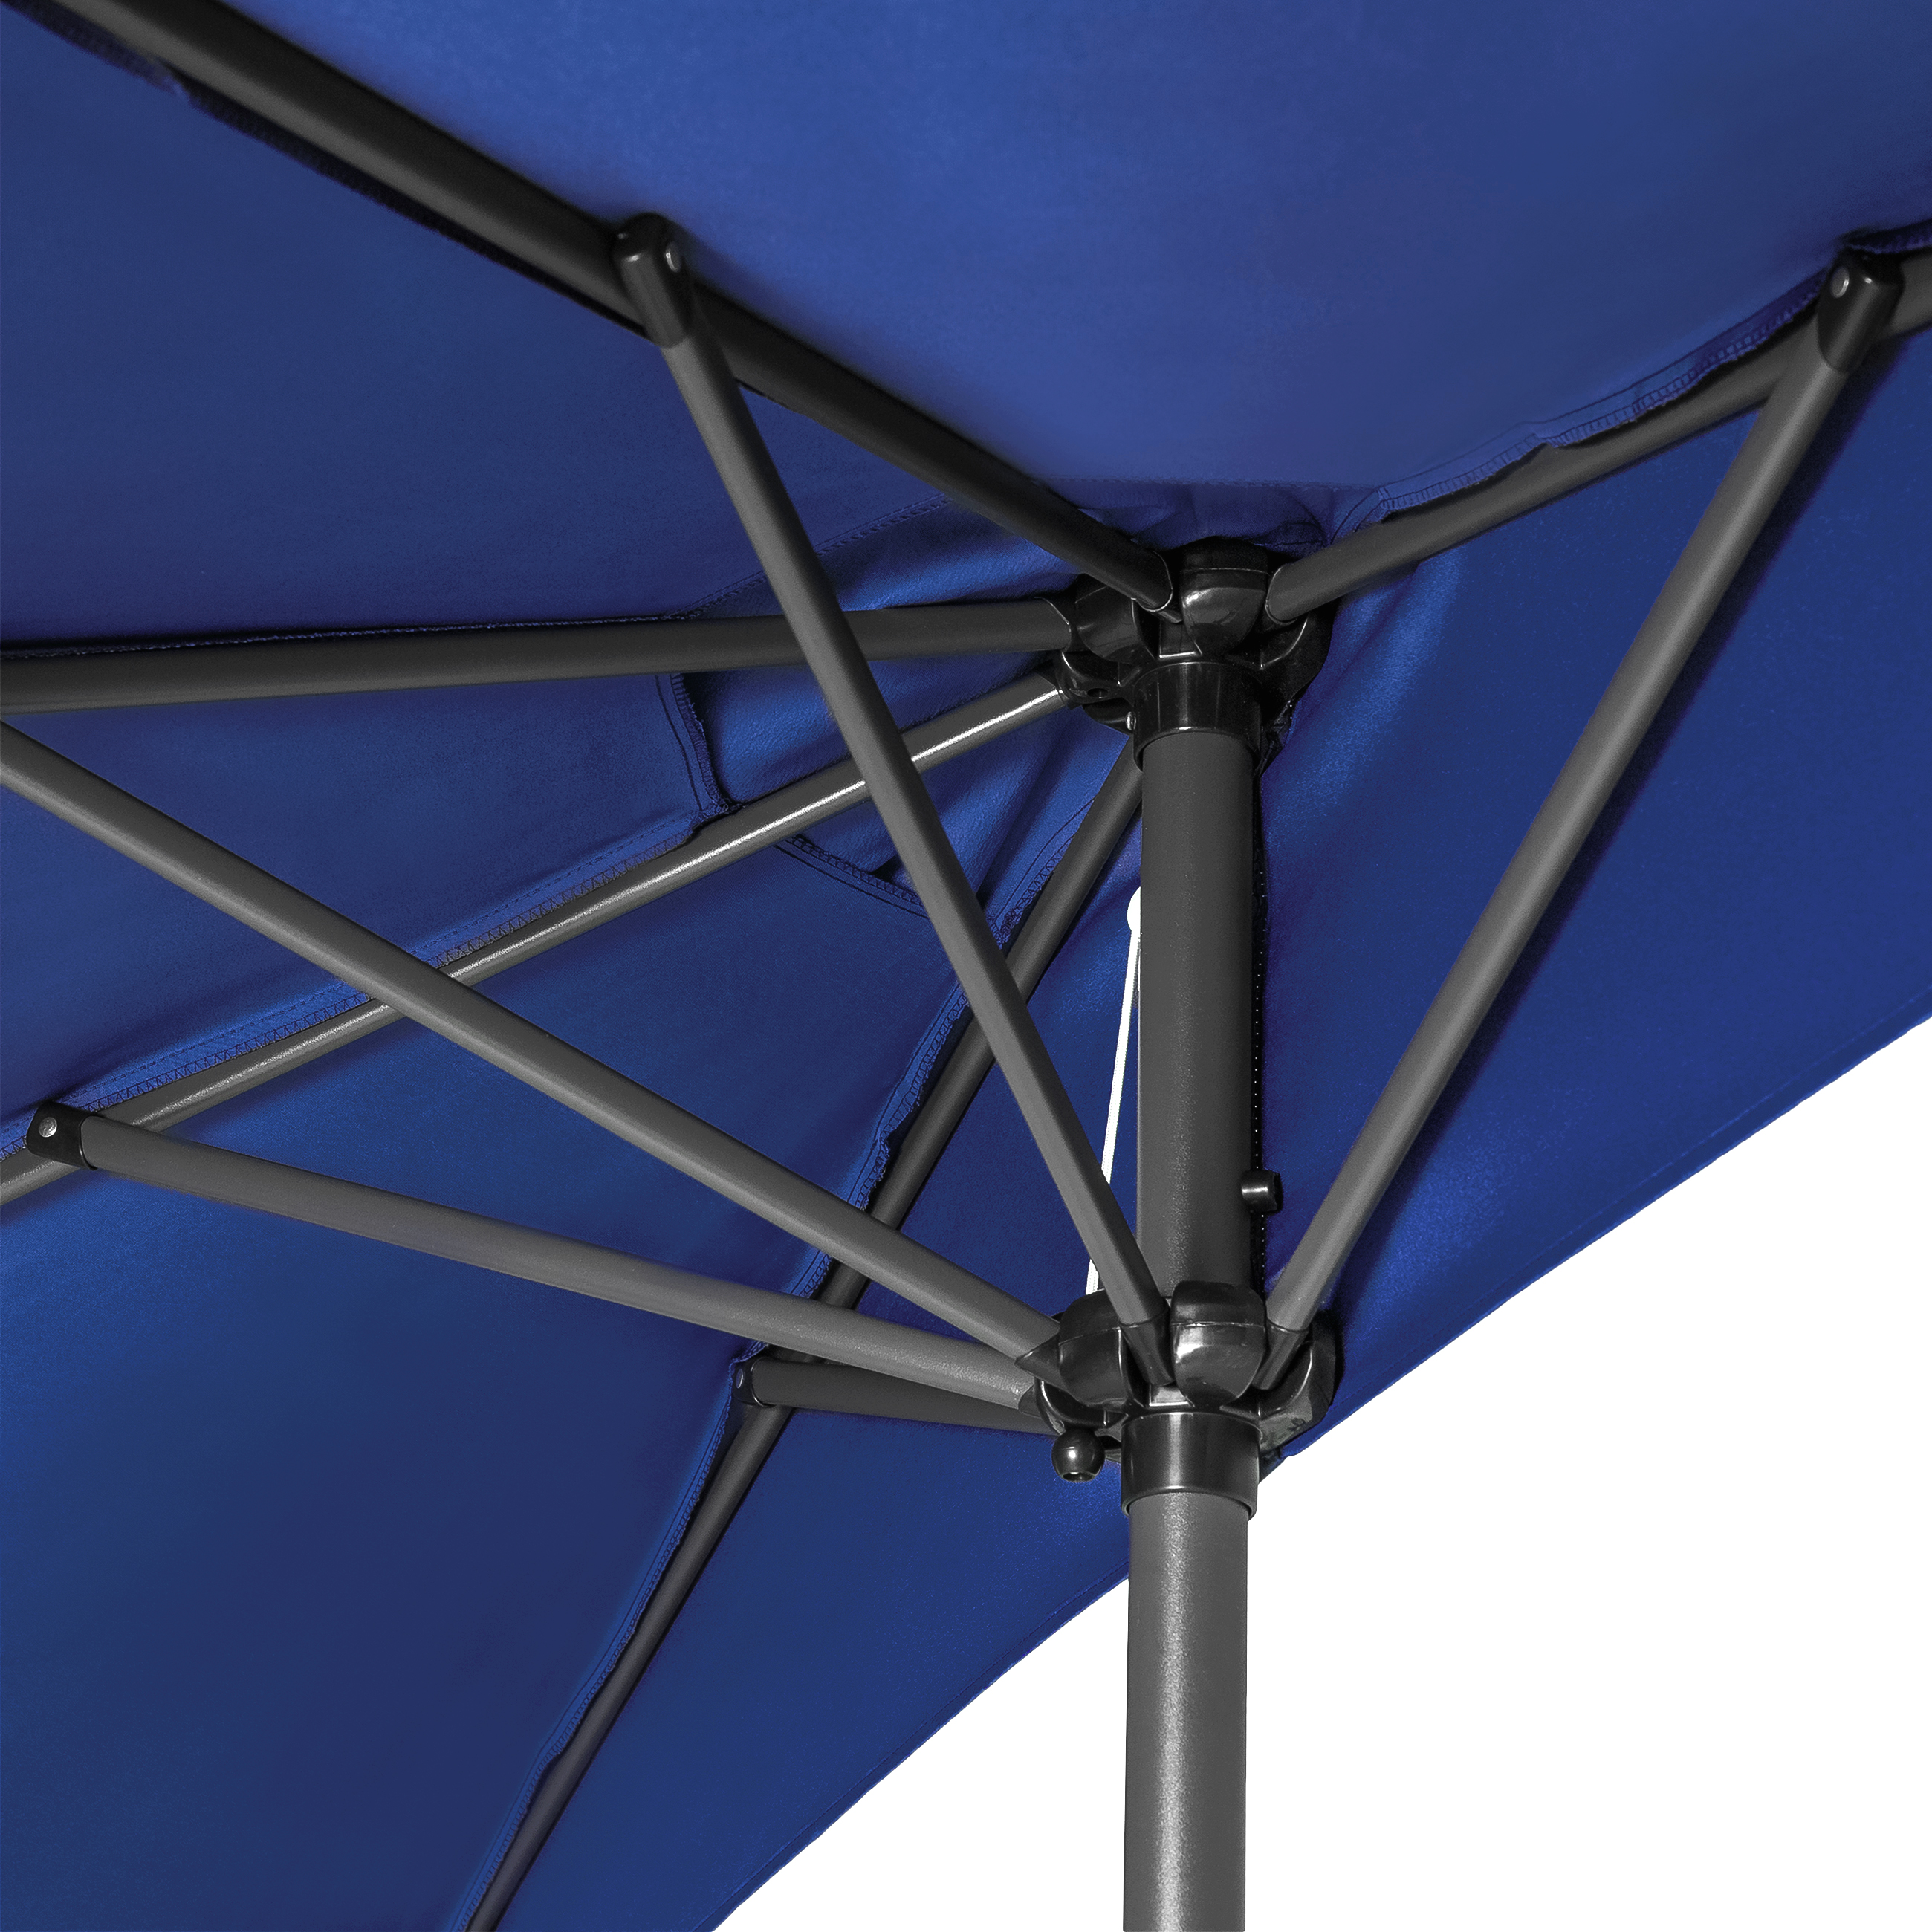 BCP-9ft-Half-Patio-Umbrella-w-Crank-Steel-Frame-UV-amp-Water-Resistant-Fabric thumbnail 10